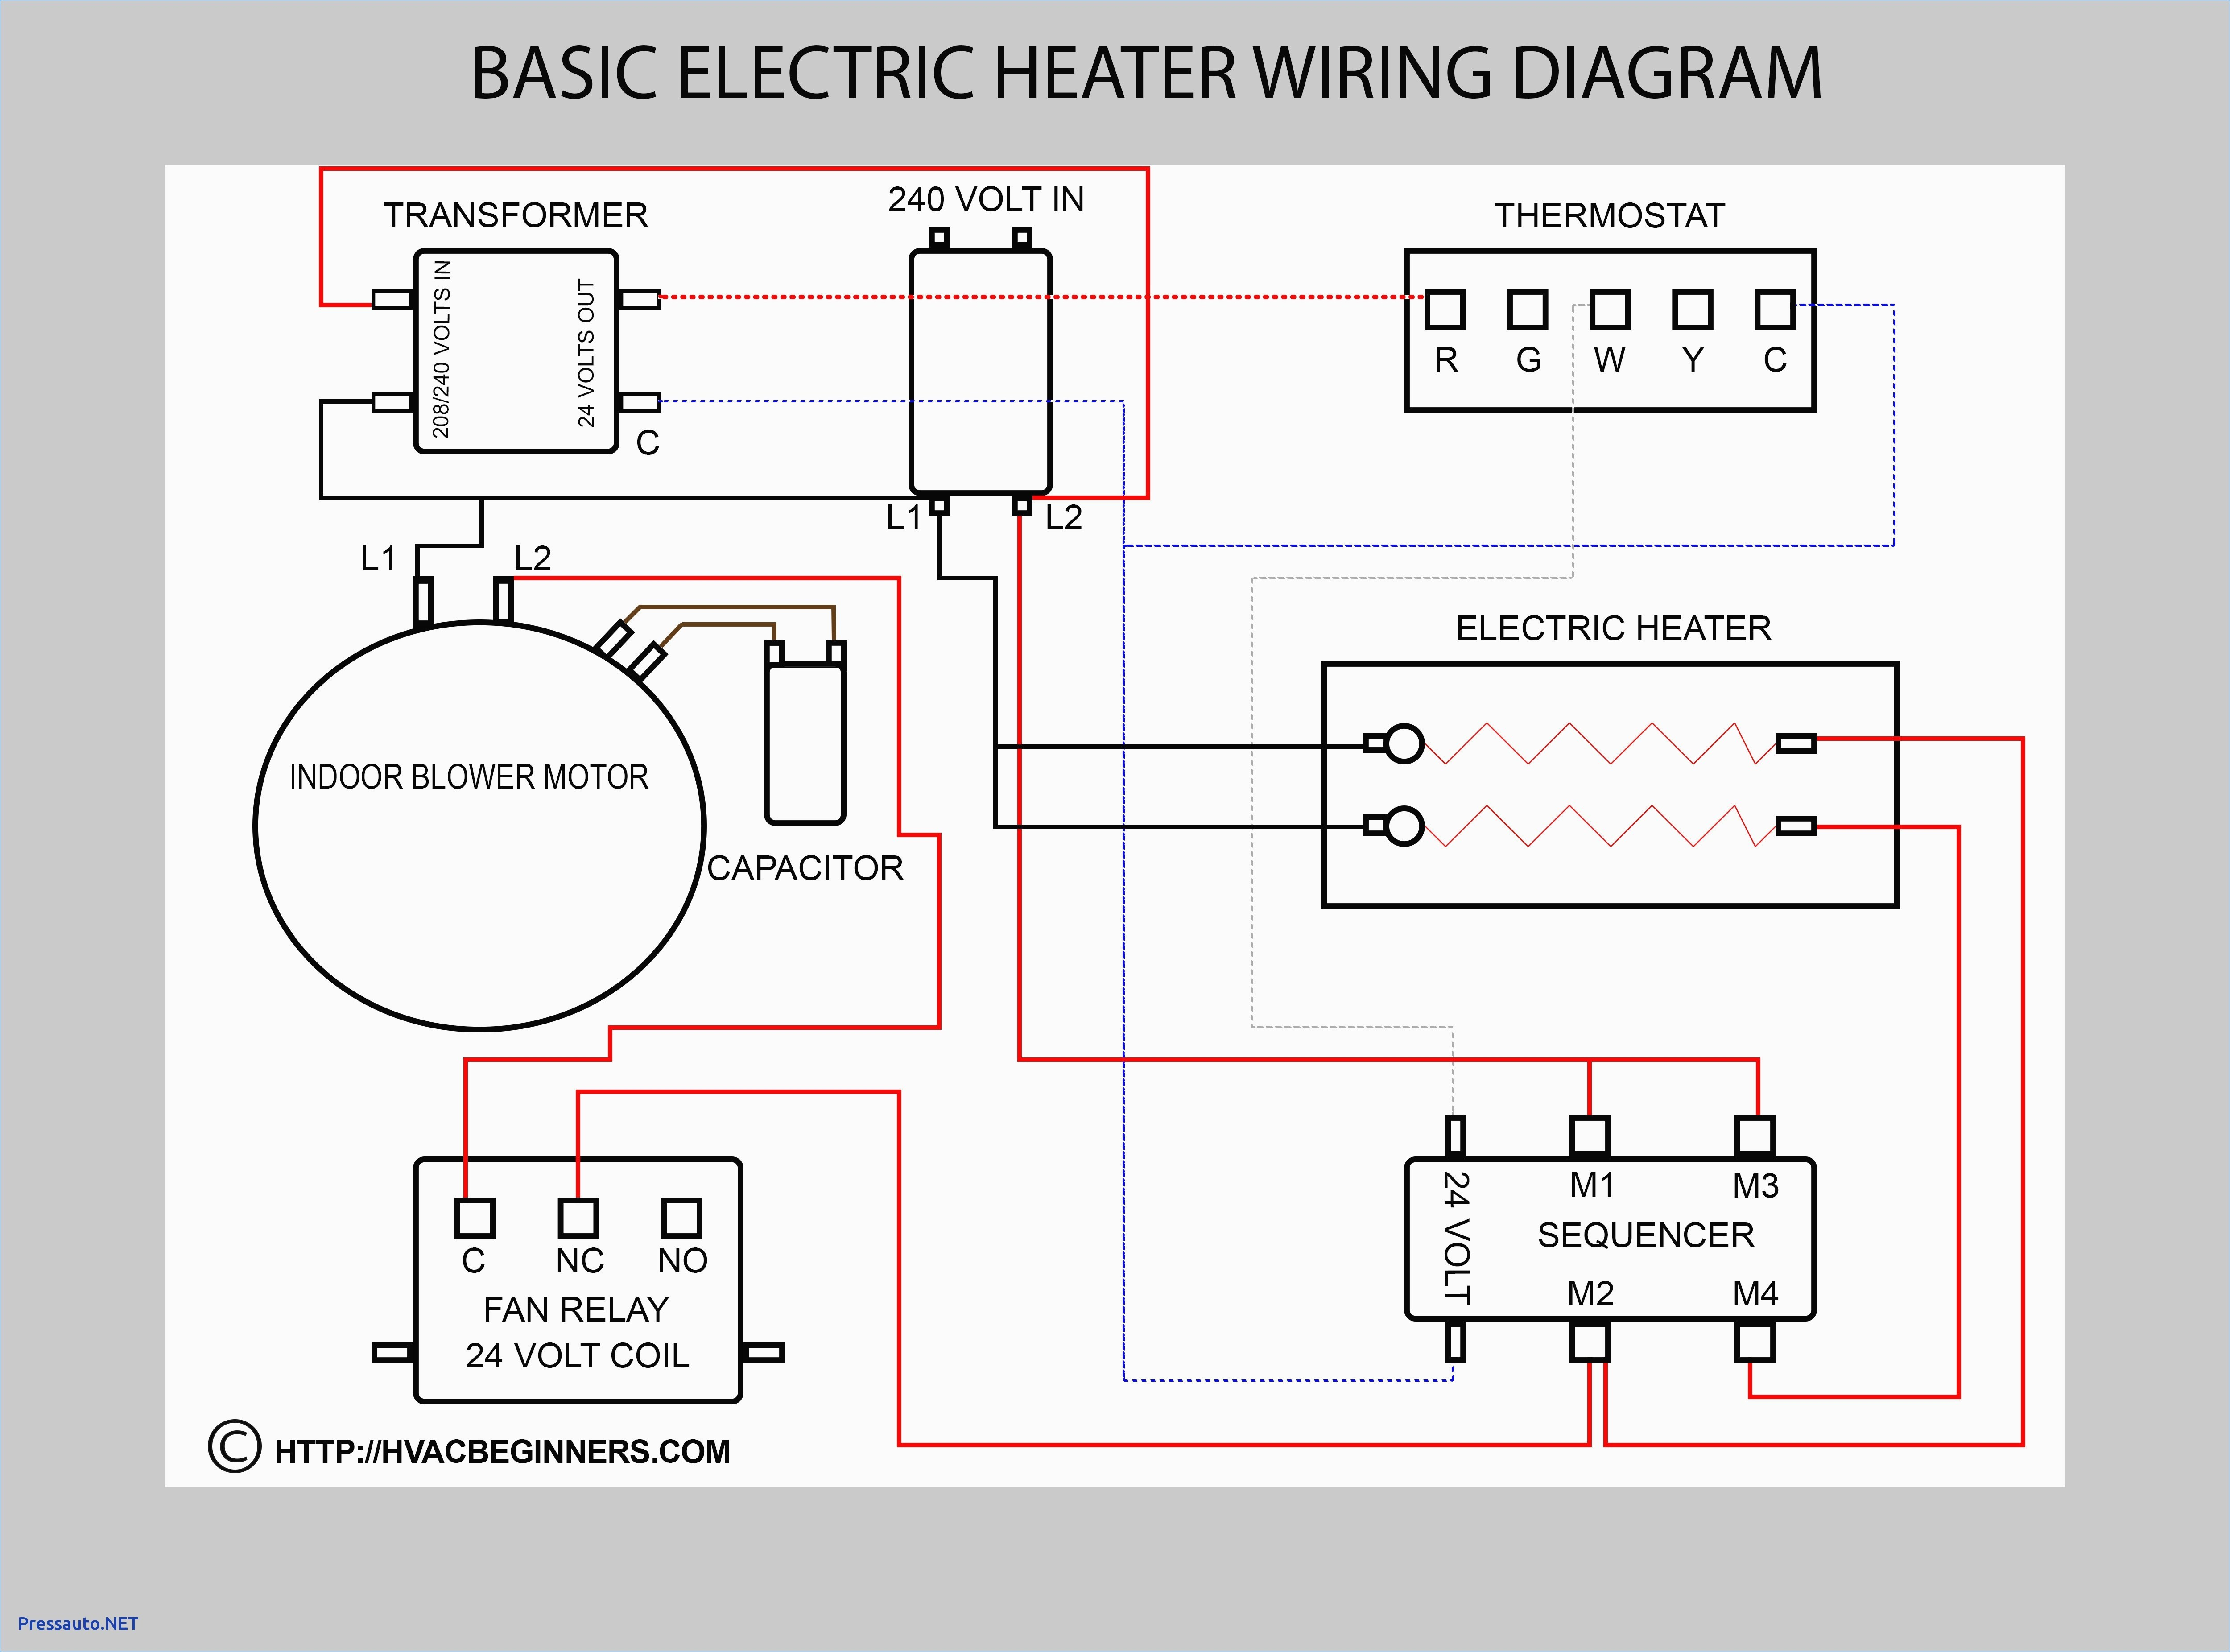 wiring diagram furthermore wiring 240 volt baseboard electric heater wire thermostat wiring moreover electric baseboard heater wiring